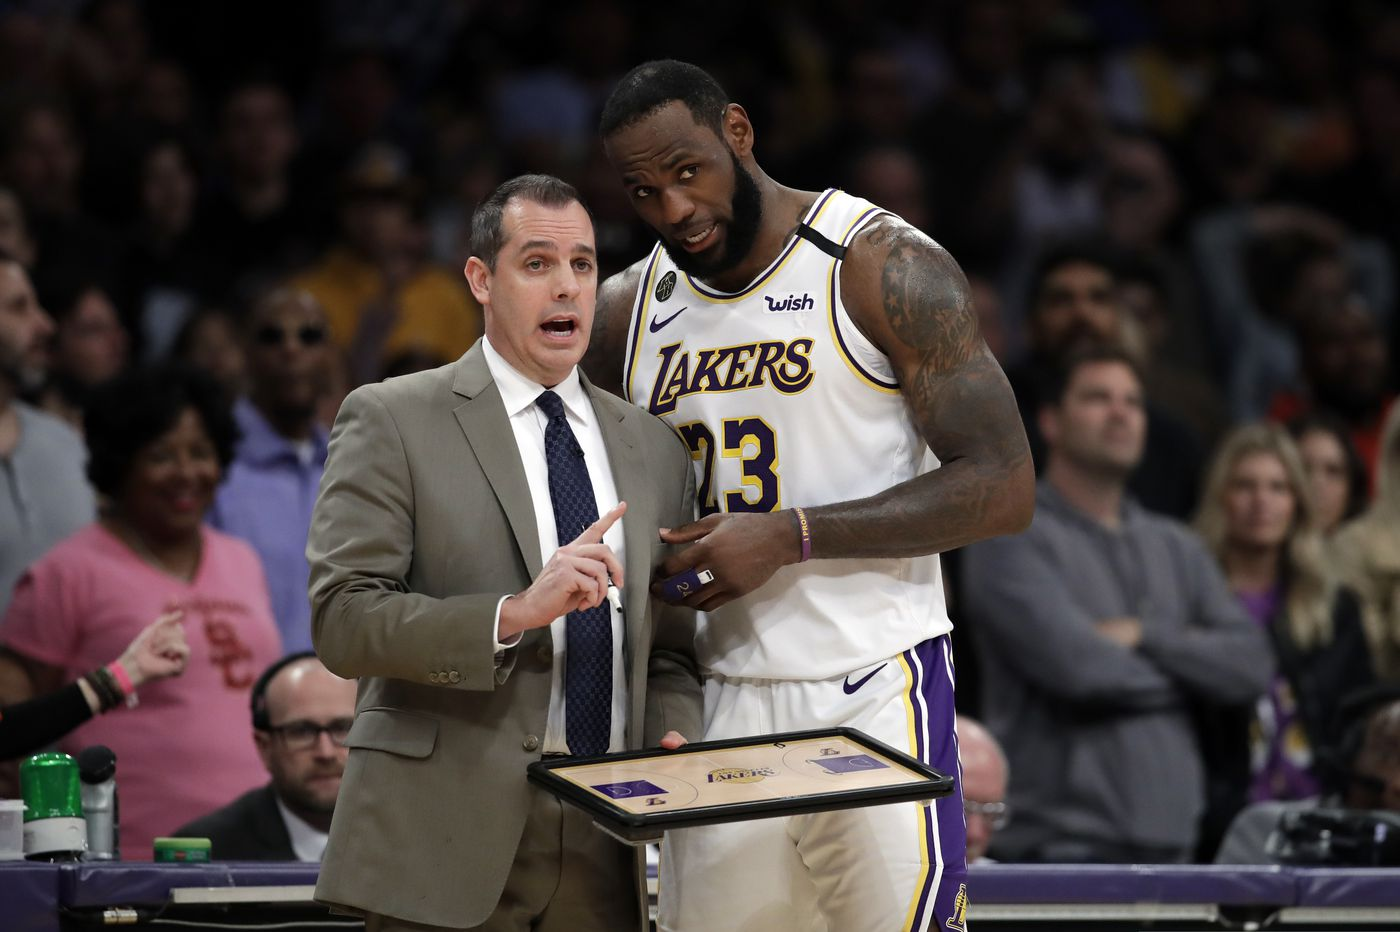 Time off helped mold Wildwood's Frank Vogel into an NBA championship coach